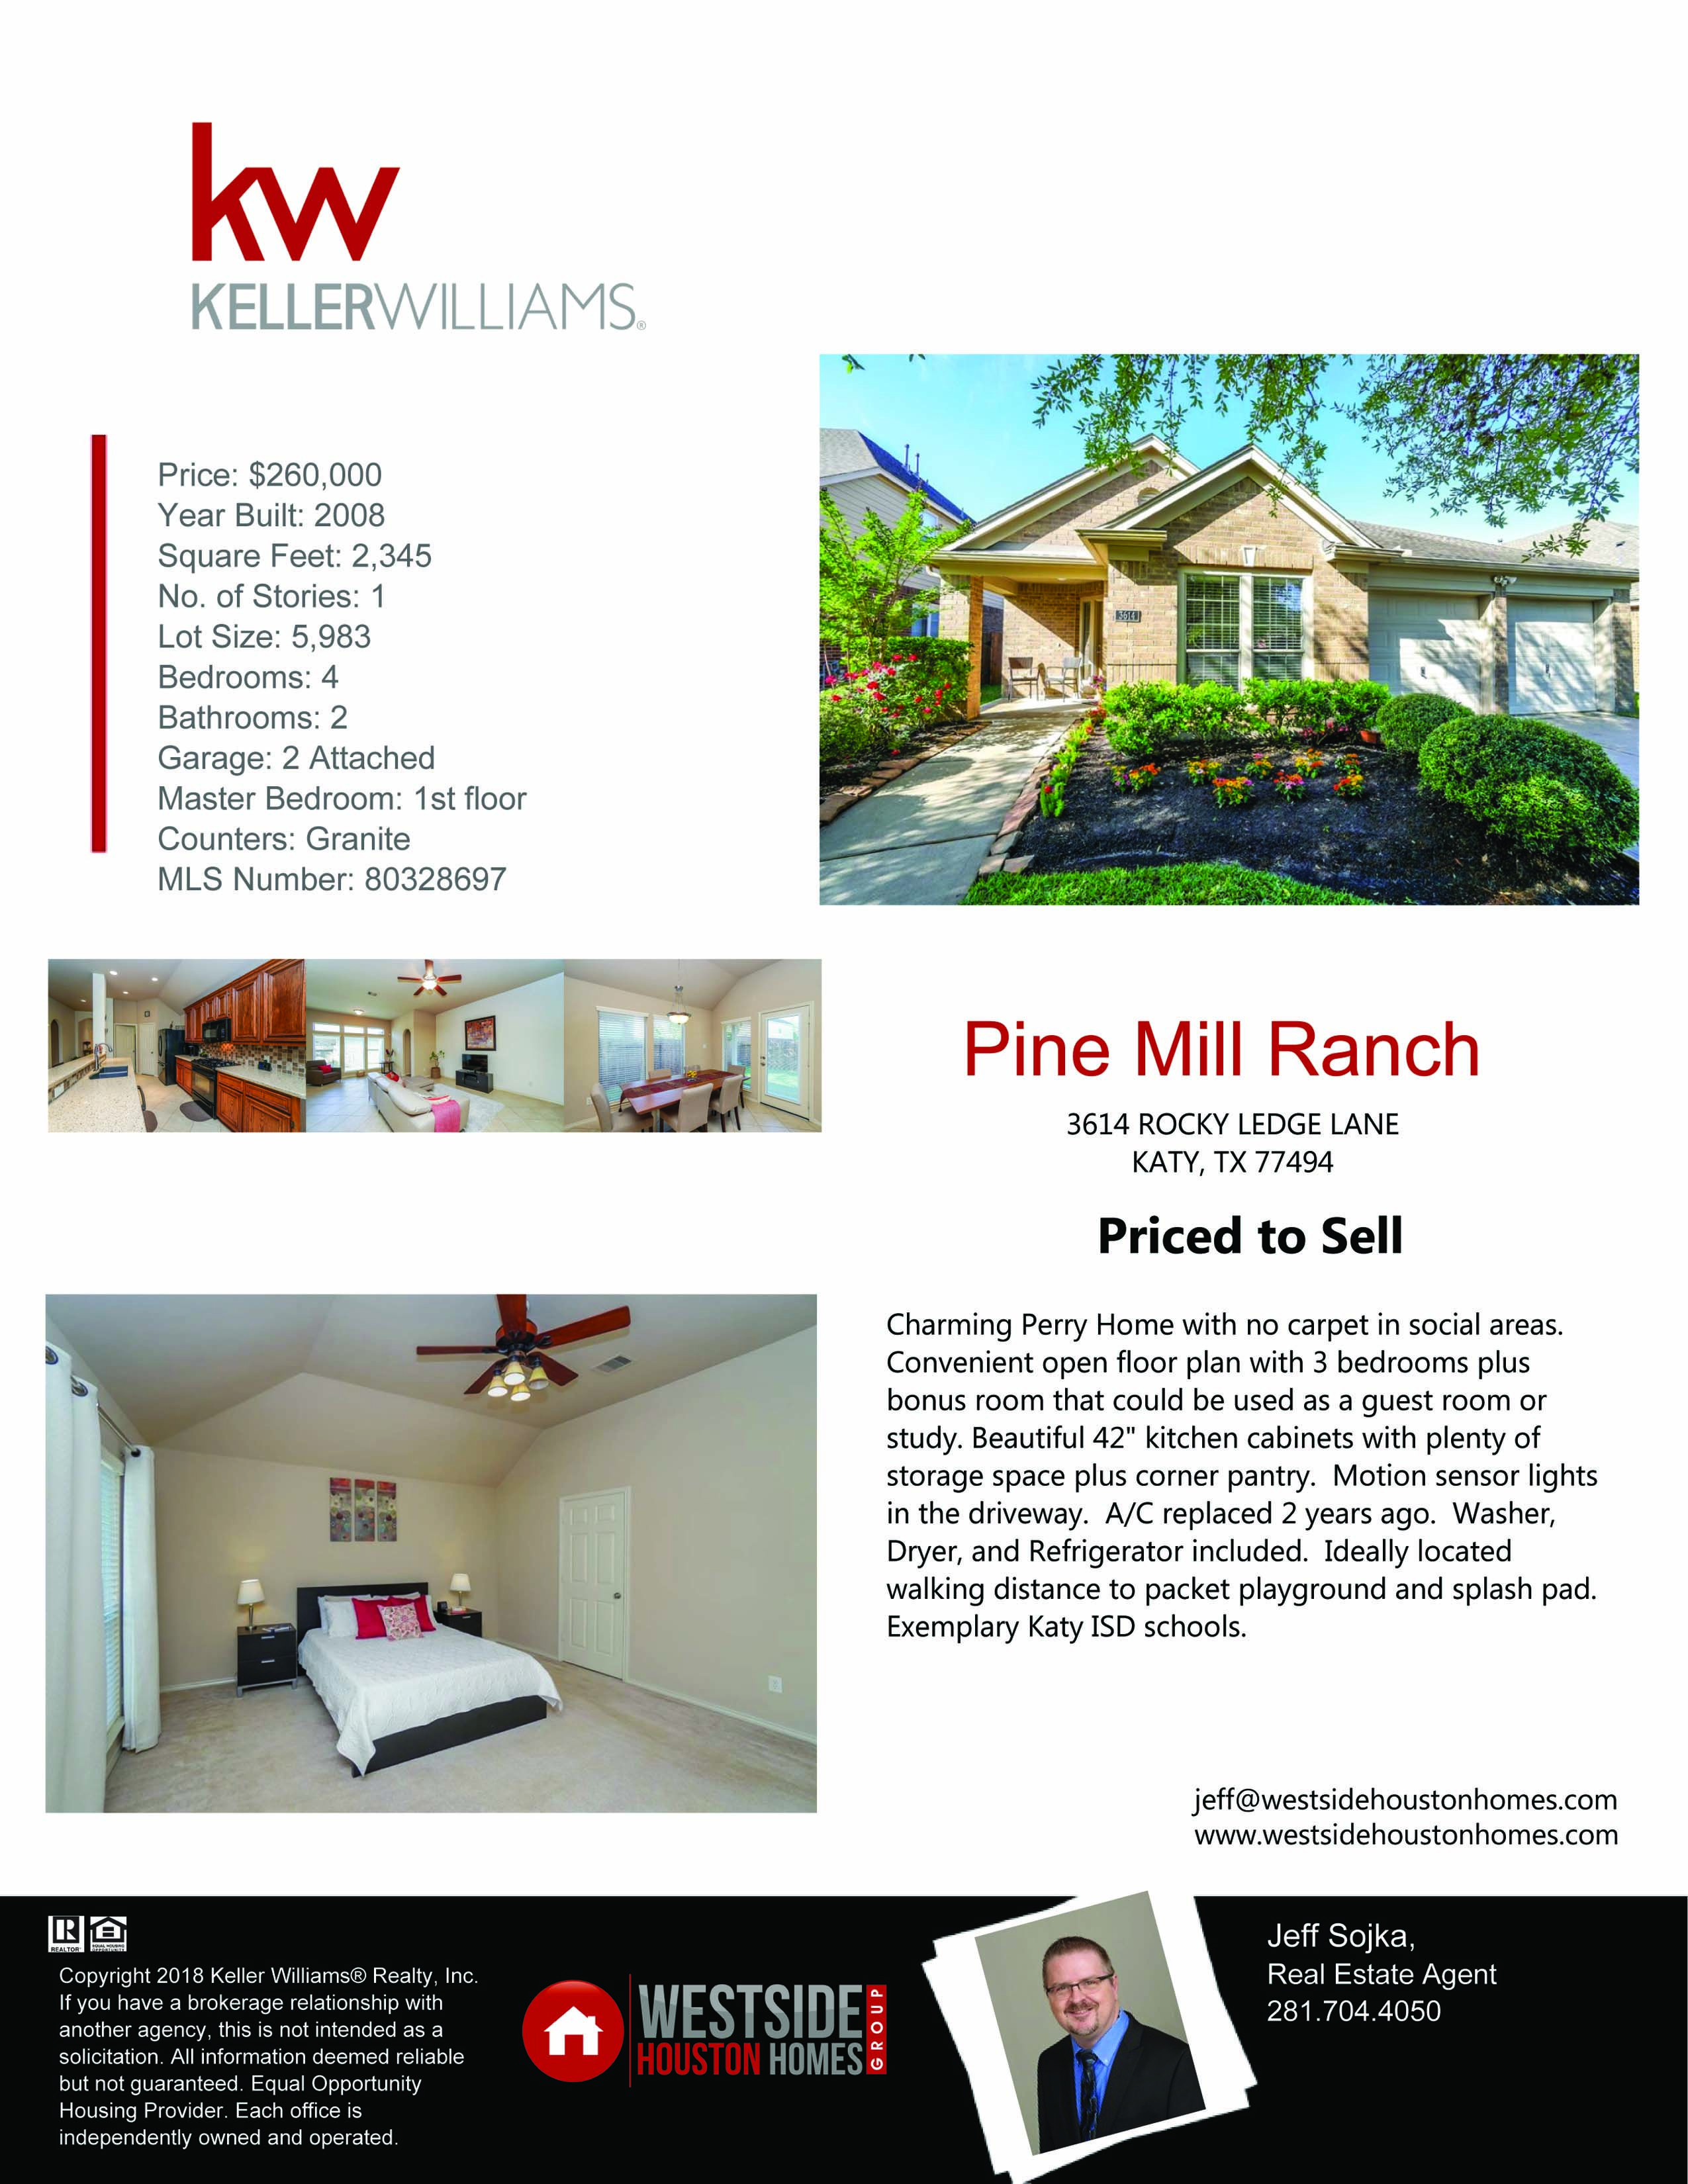 WOW! Beautiful $260k house in Katy - MUST SEE Looking for a ... on ranch house floor plans with dimensions, 4-bedroom ranch house plans, split ranch house floor plans, small country house plans, simple house plans, ranch house garages, small guest house floor plans, ranch house open kitchen, modern ranch house plans, texas ranch house plans, 5 bedroom house floor plans, ranch style house plans, 2014 new home floor plans, open-concept ranch house plans, unique ranch house plans, country ranch house plans, small ranch house floor plans, ranch house floor plans with wrap around porch, rustic ranch house plans, simple ranch floor plans,